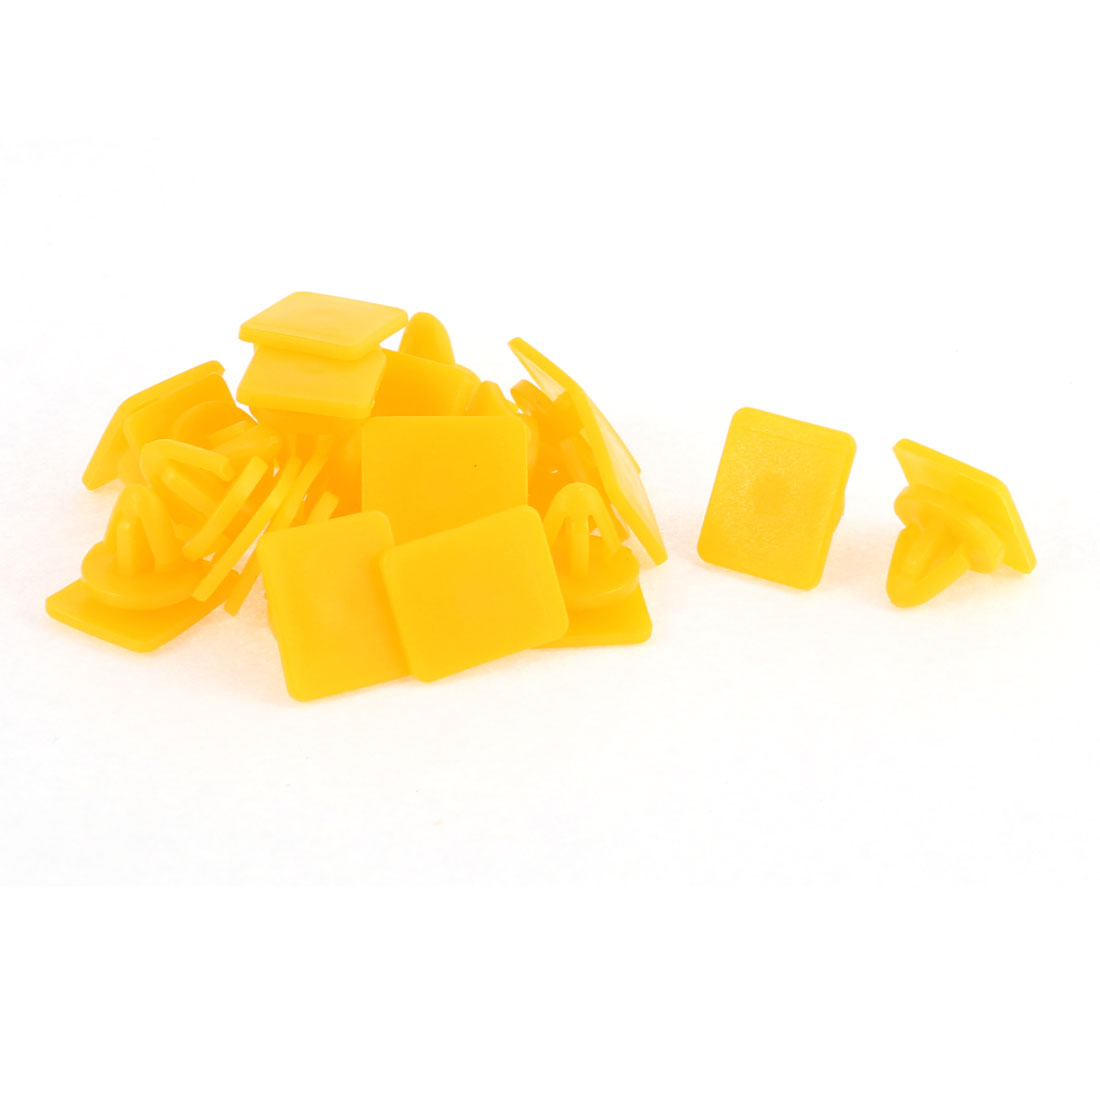 20 Pcs Yellow Plastic Bumper Rivet Fender Panel Clips for Hyundai